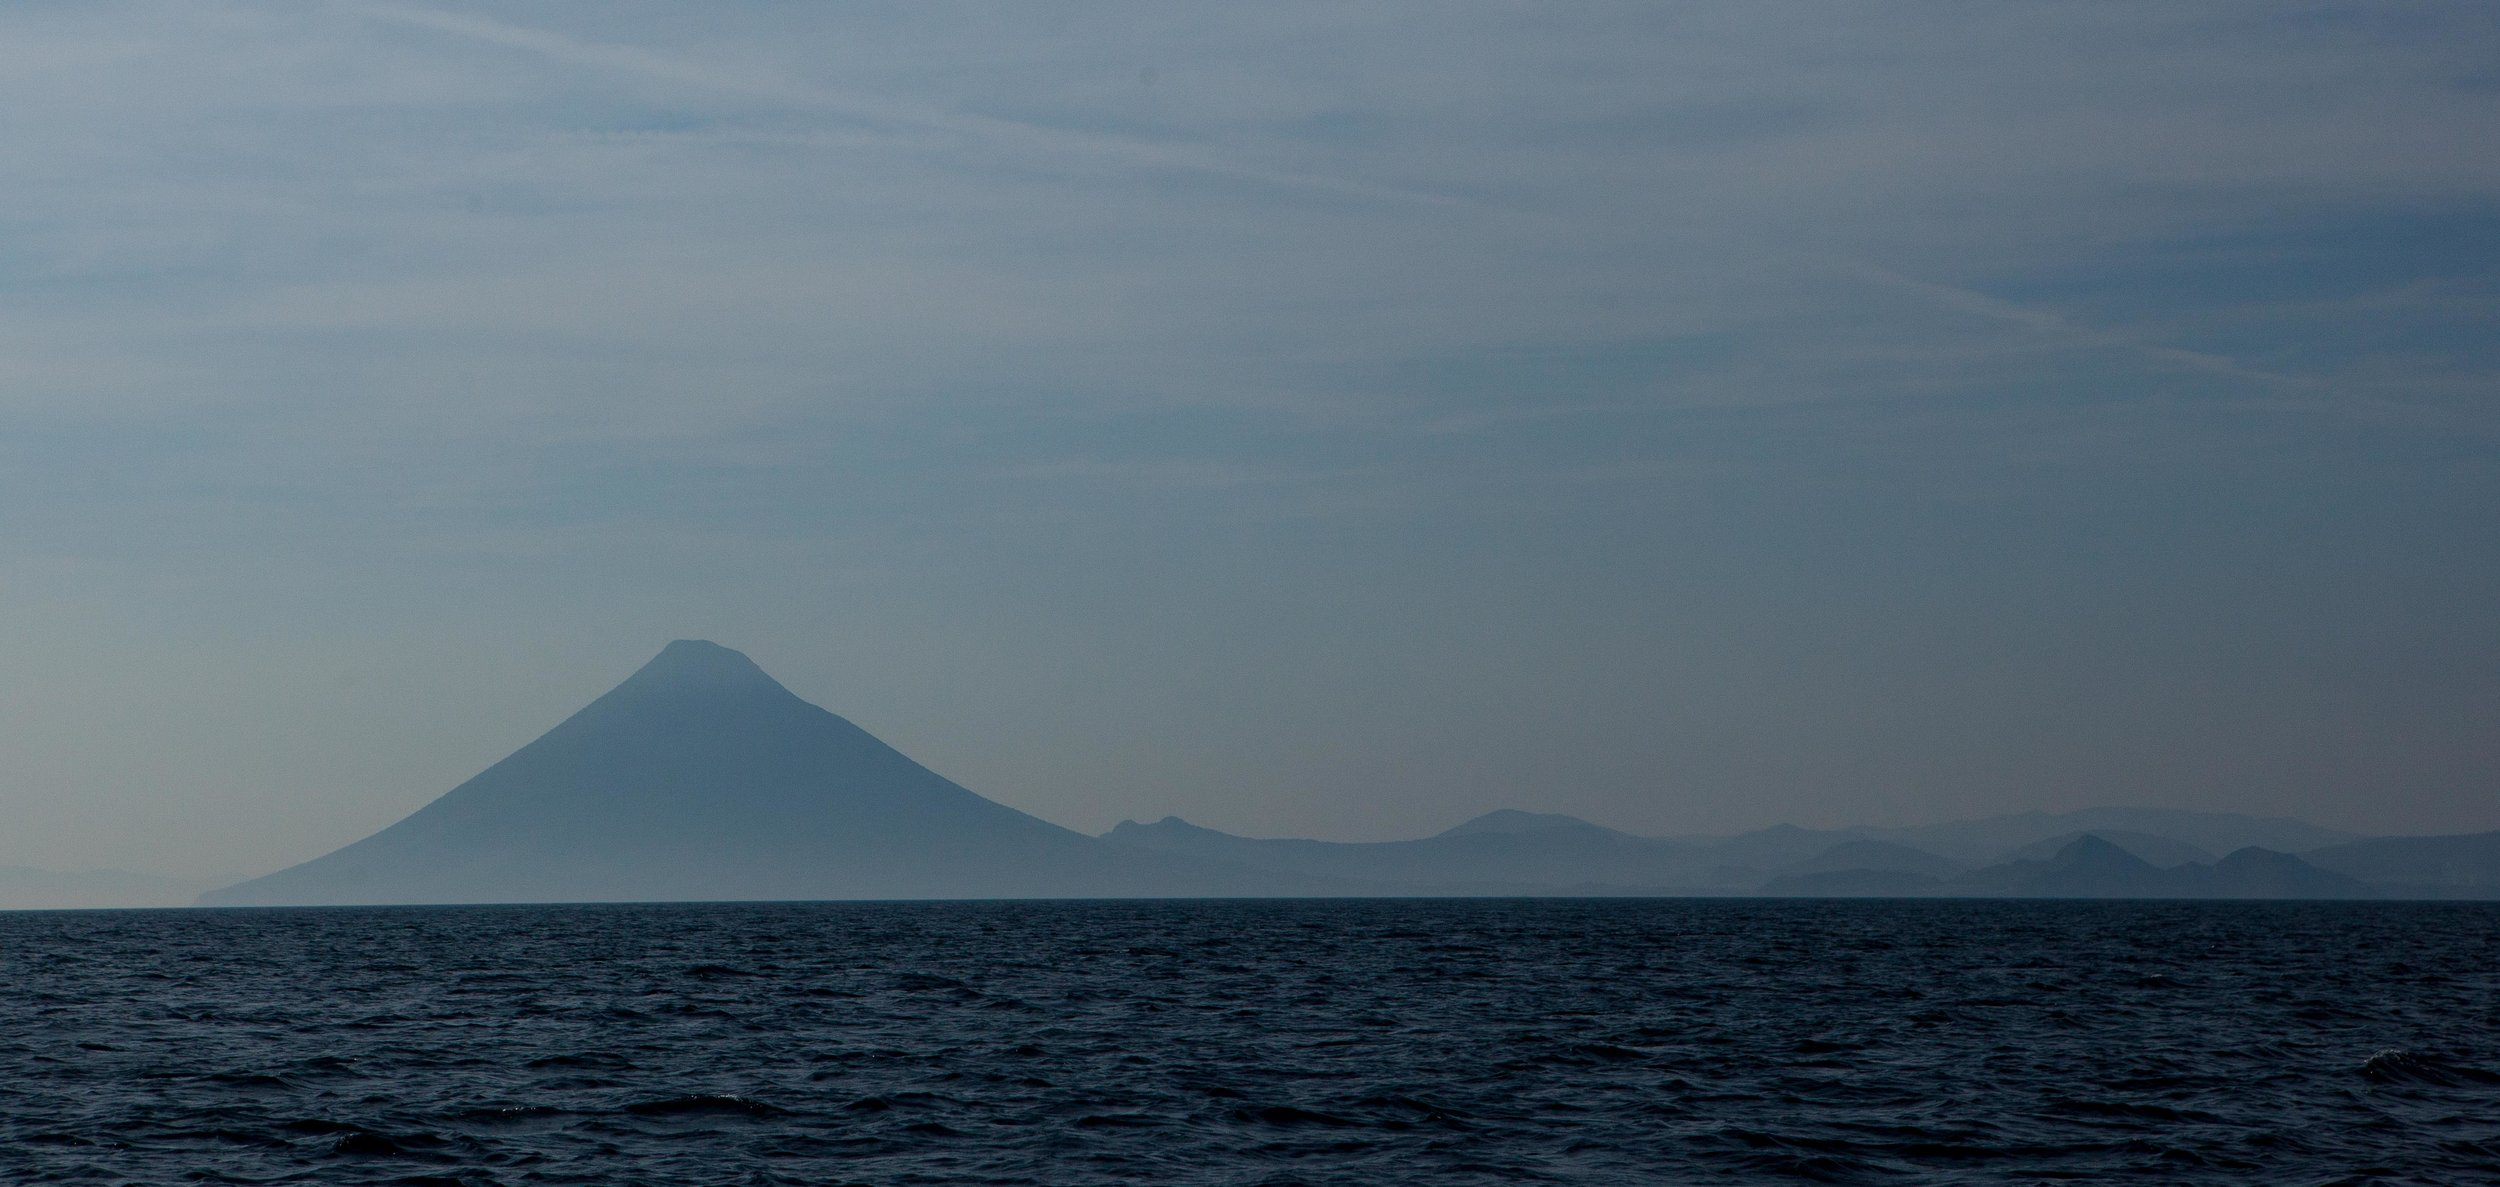 The volcano Mt. Daimon from the sea as we made our way to Yamagawa.